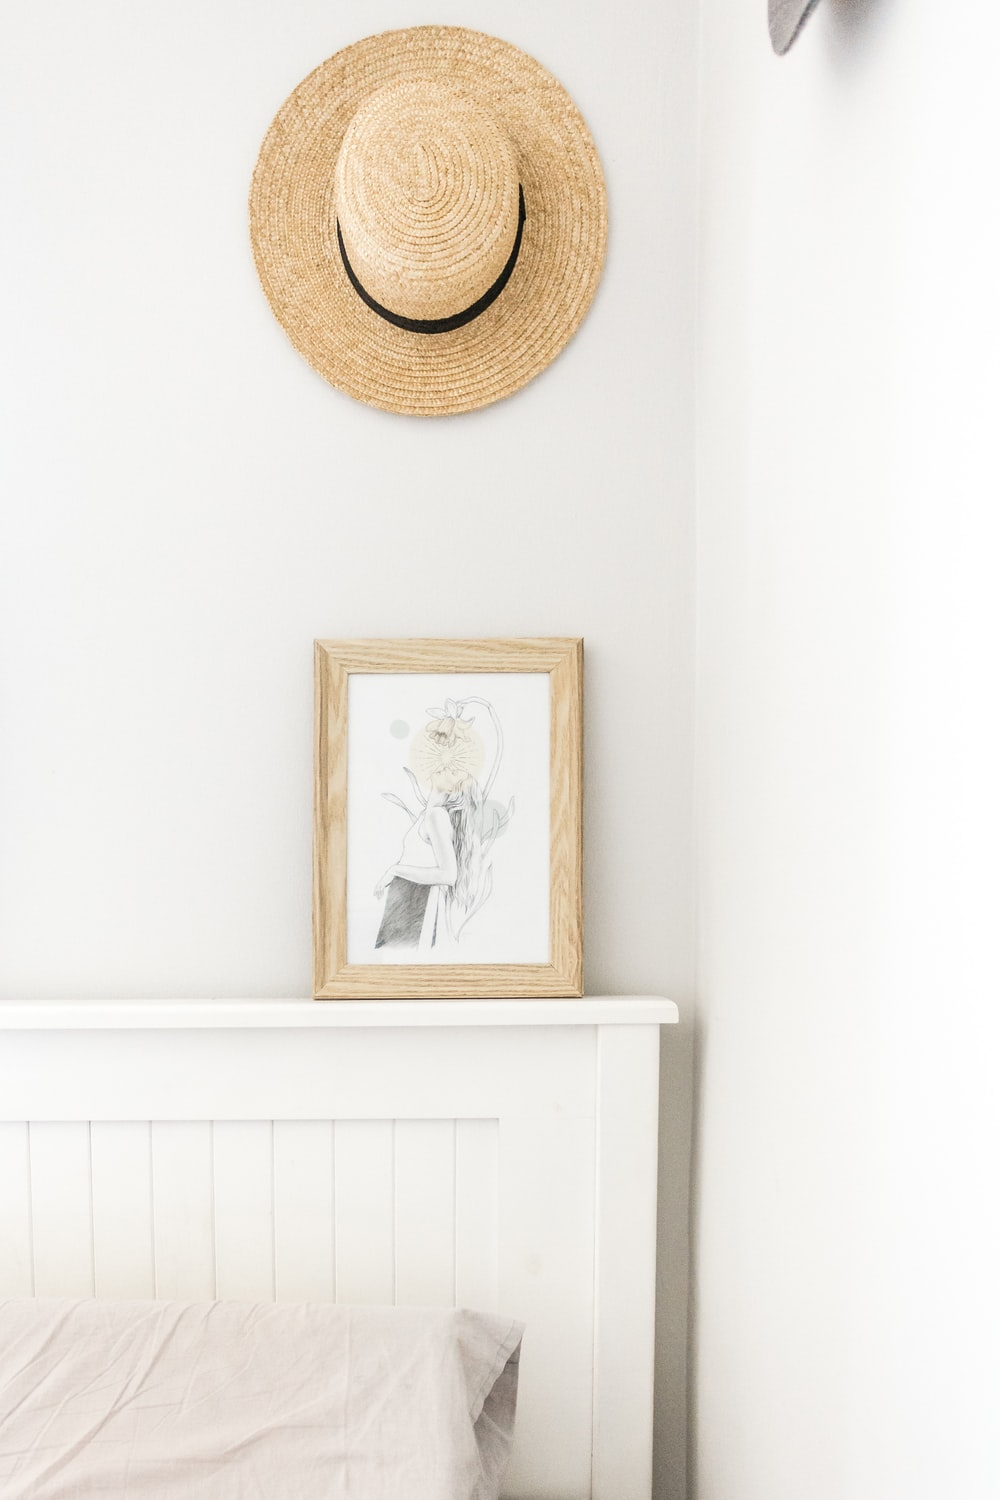 beige sun hat near abstract painting with brown frame beside wall